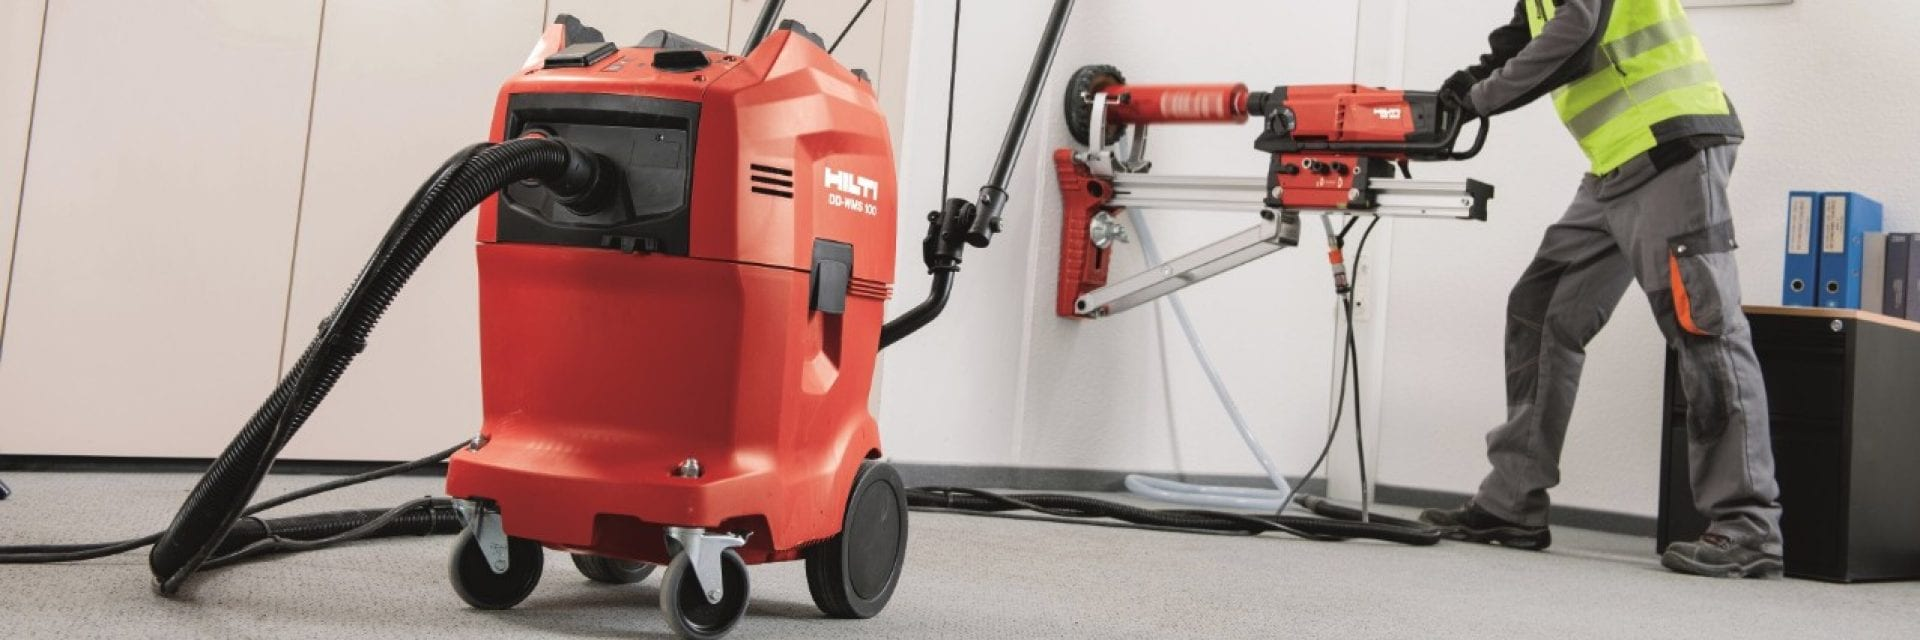 Hilti DD-WMS 100 Water Management System